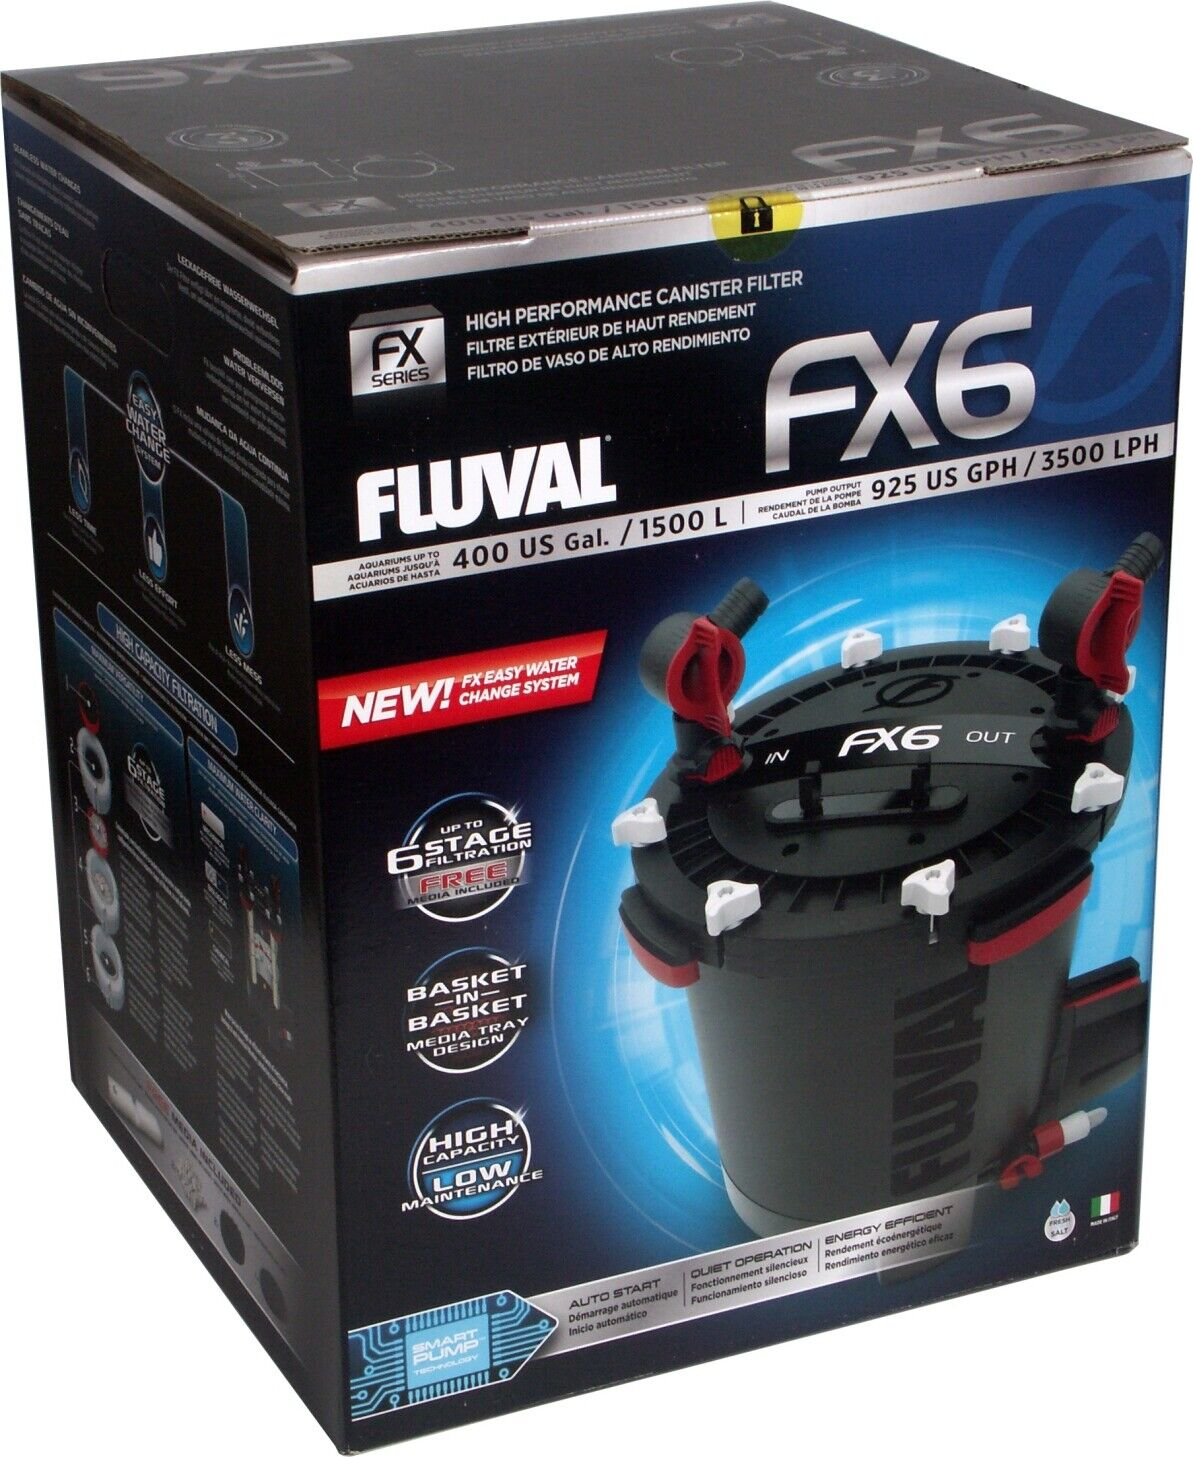 FLUVAL FX6 CANISTER FILTER A219 All Media included PLUG AND